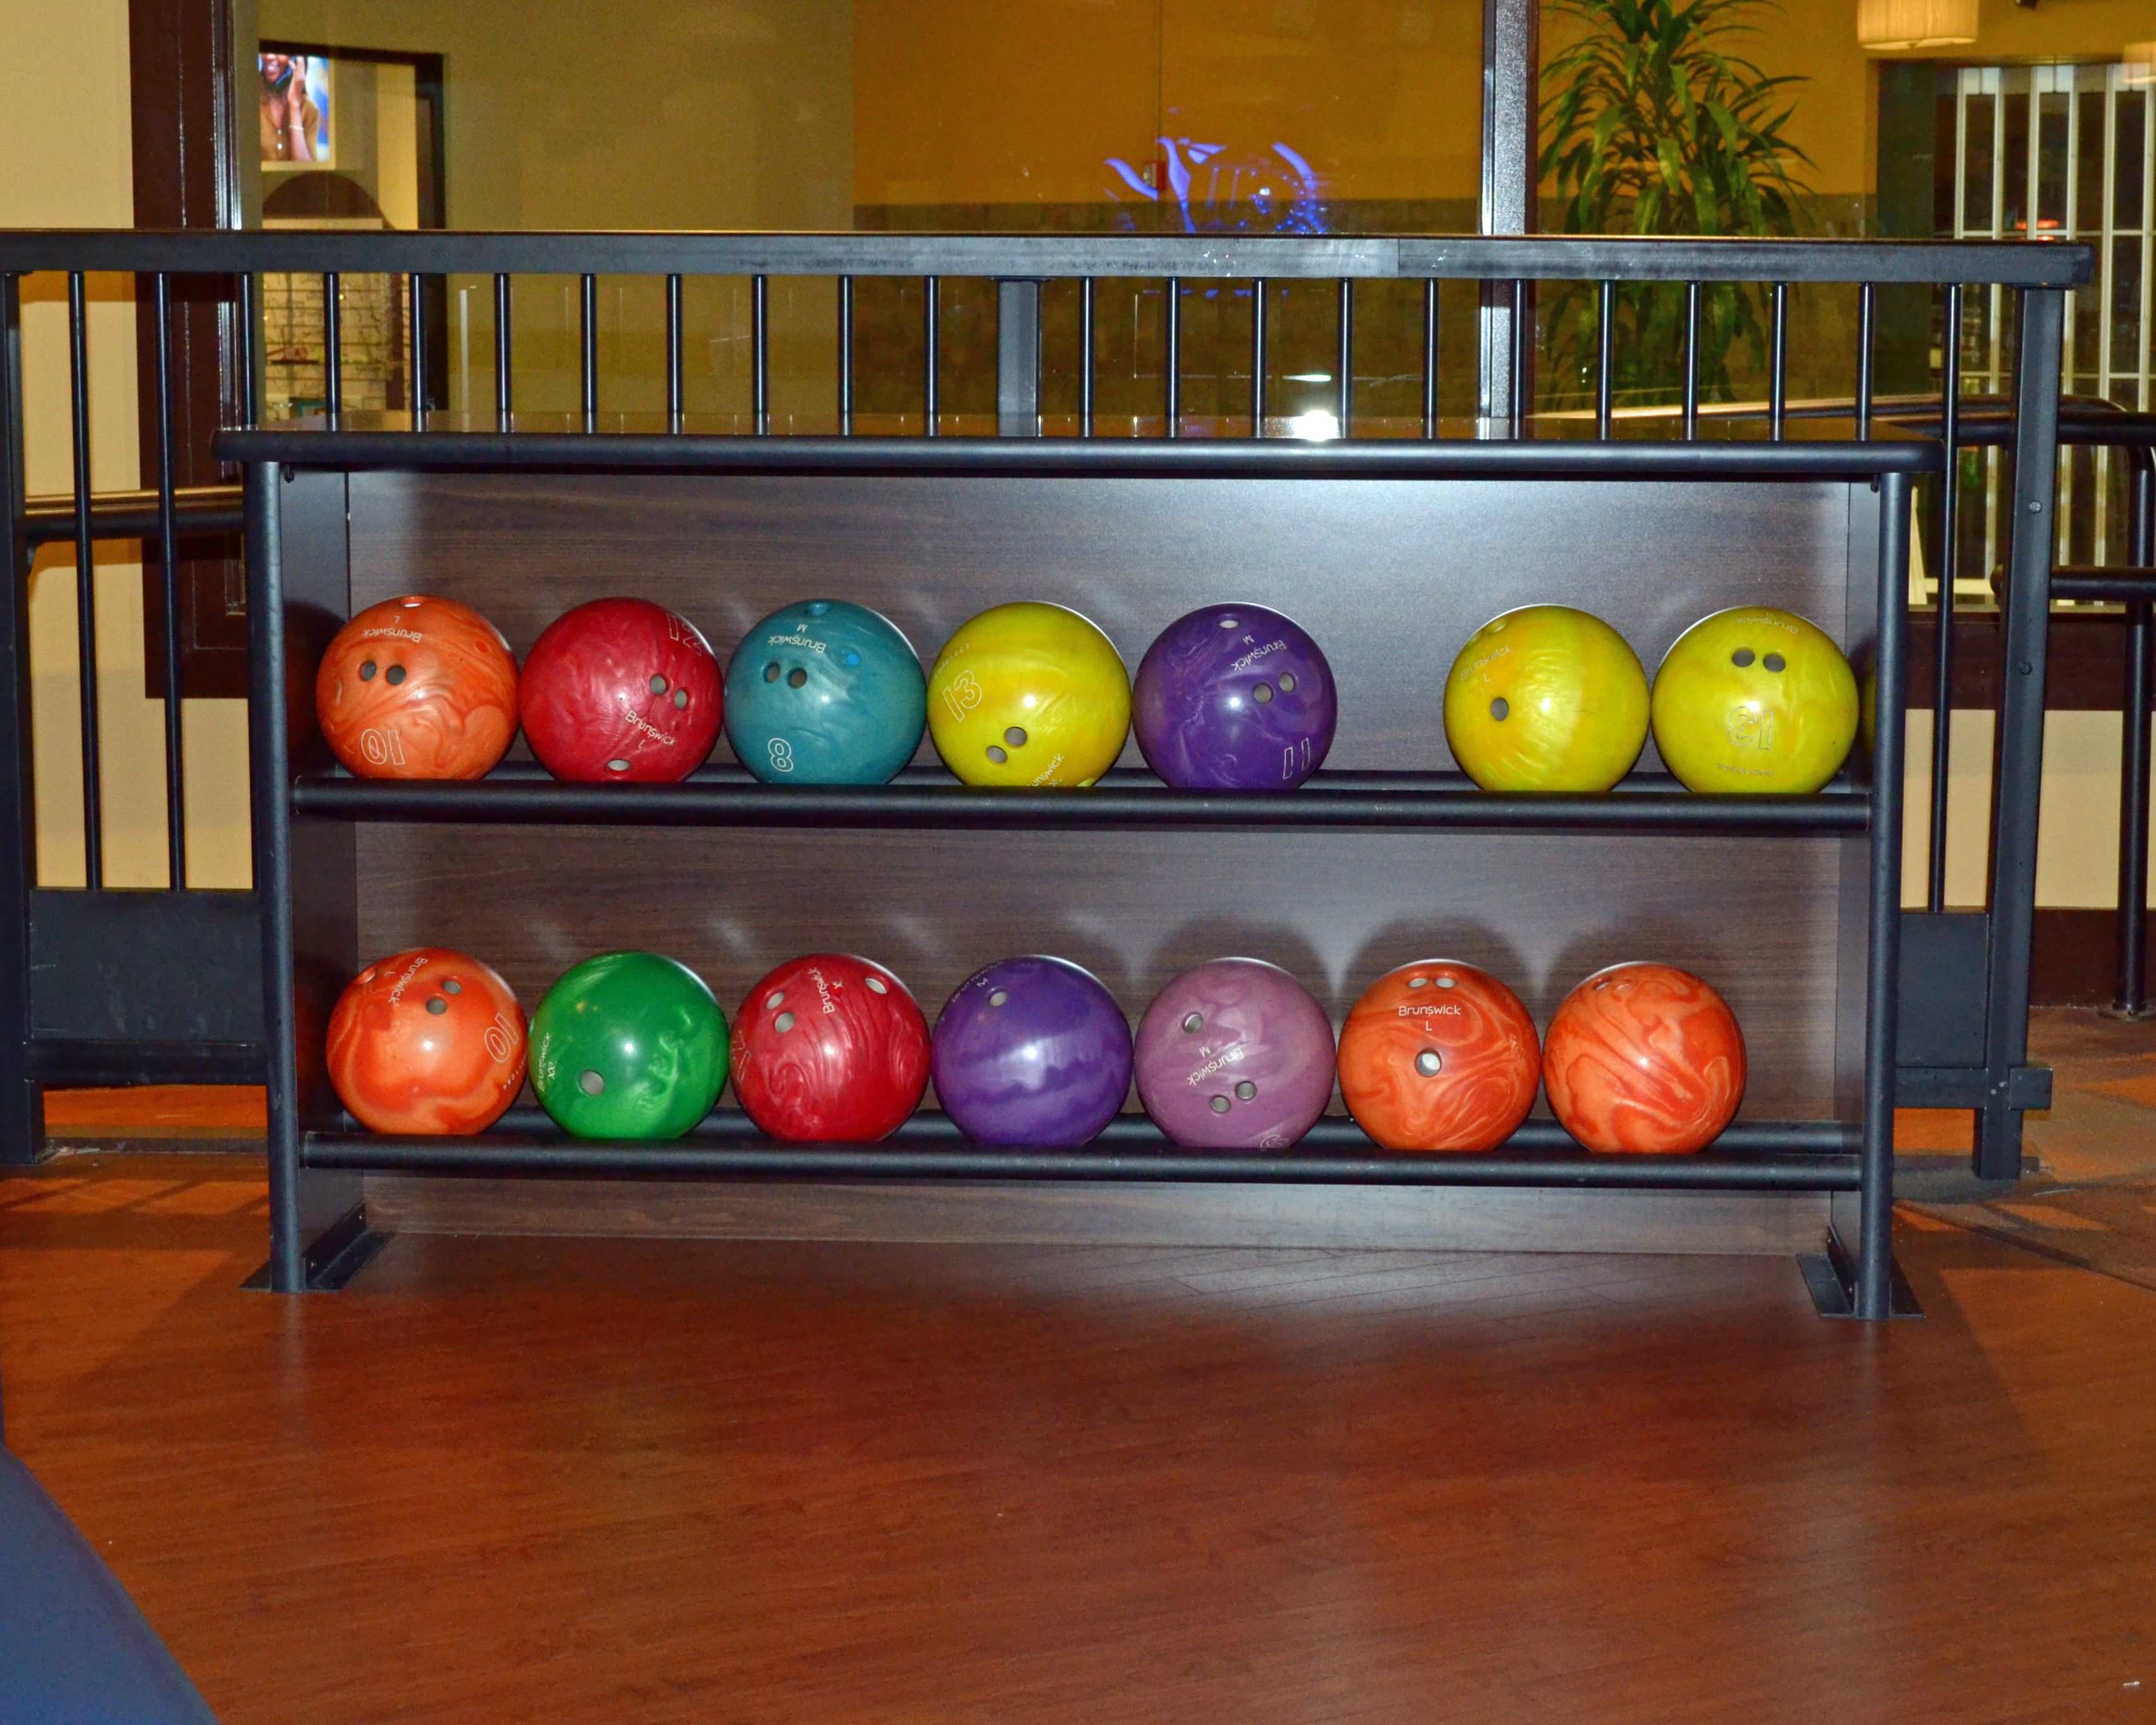 Cw Lanes And Games Lincoln Rhodeisland Bowling Furniture Venuefurniture Bowlingfurniture Commercialfurniture Commercial Furniture Bowling Ball Bowling